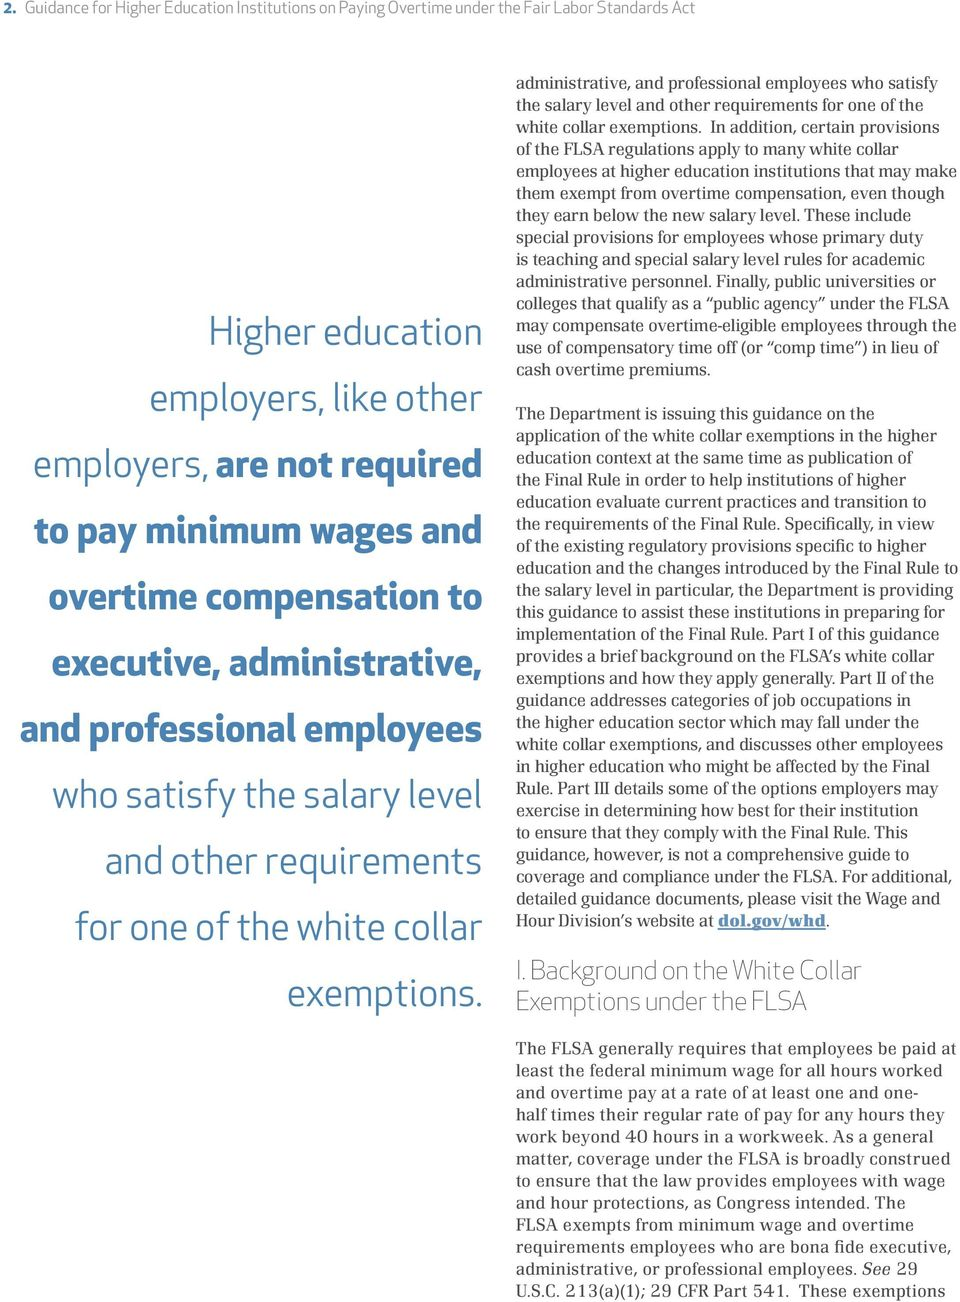 administrative, and professional employees who satisfy the salary level and other requirements for one of the white collar exemptions.